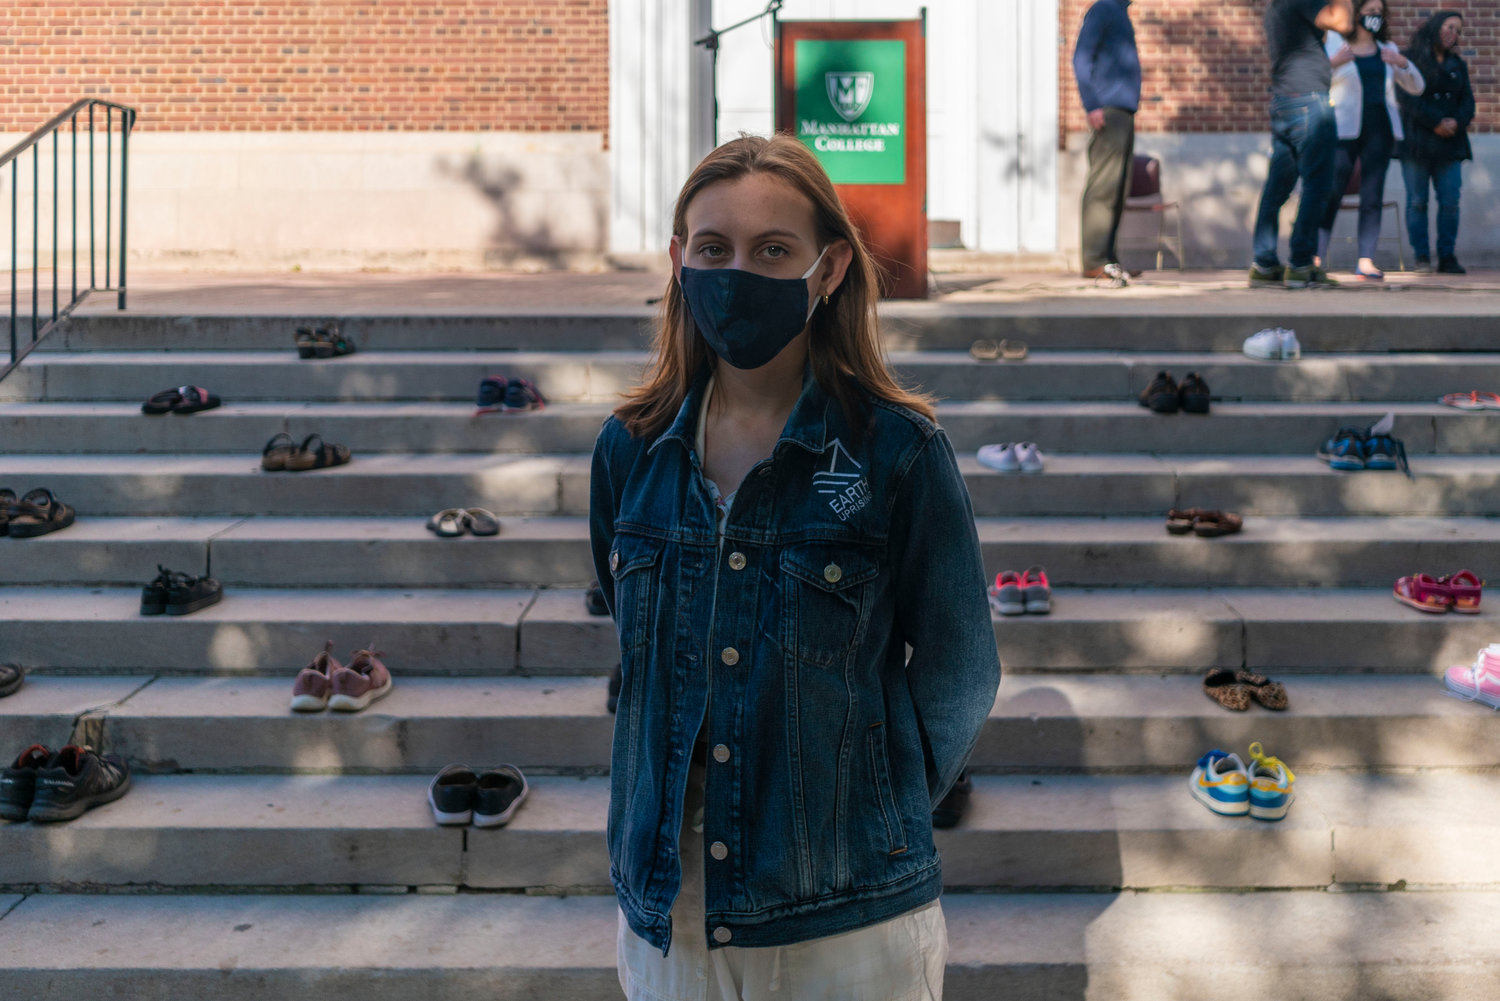 Alexandria Villaseñor, 15, delivers an impassioned speech at Manhattan College's 'shoe strike' Sept. 22. The strike was held during Climate Week NYC, aiming to raise awareness about climate change in the same spirit as last year's Global Climate Strike.